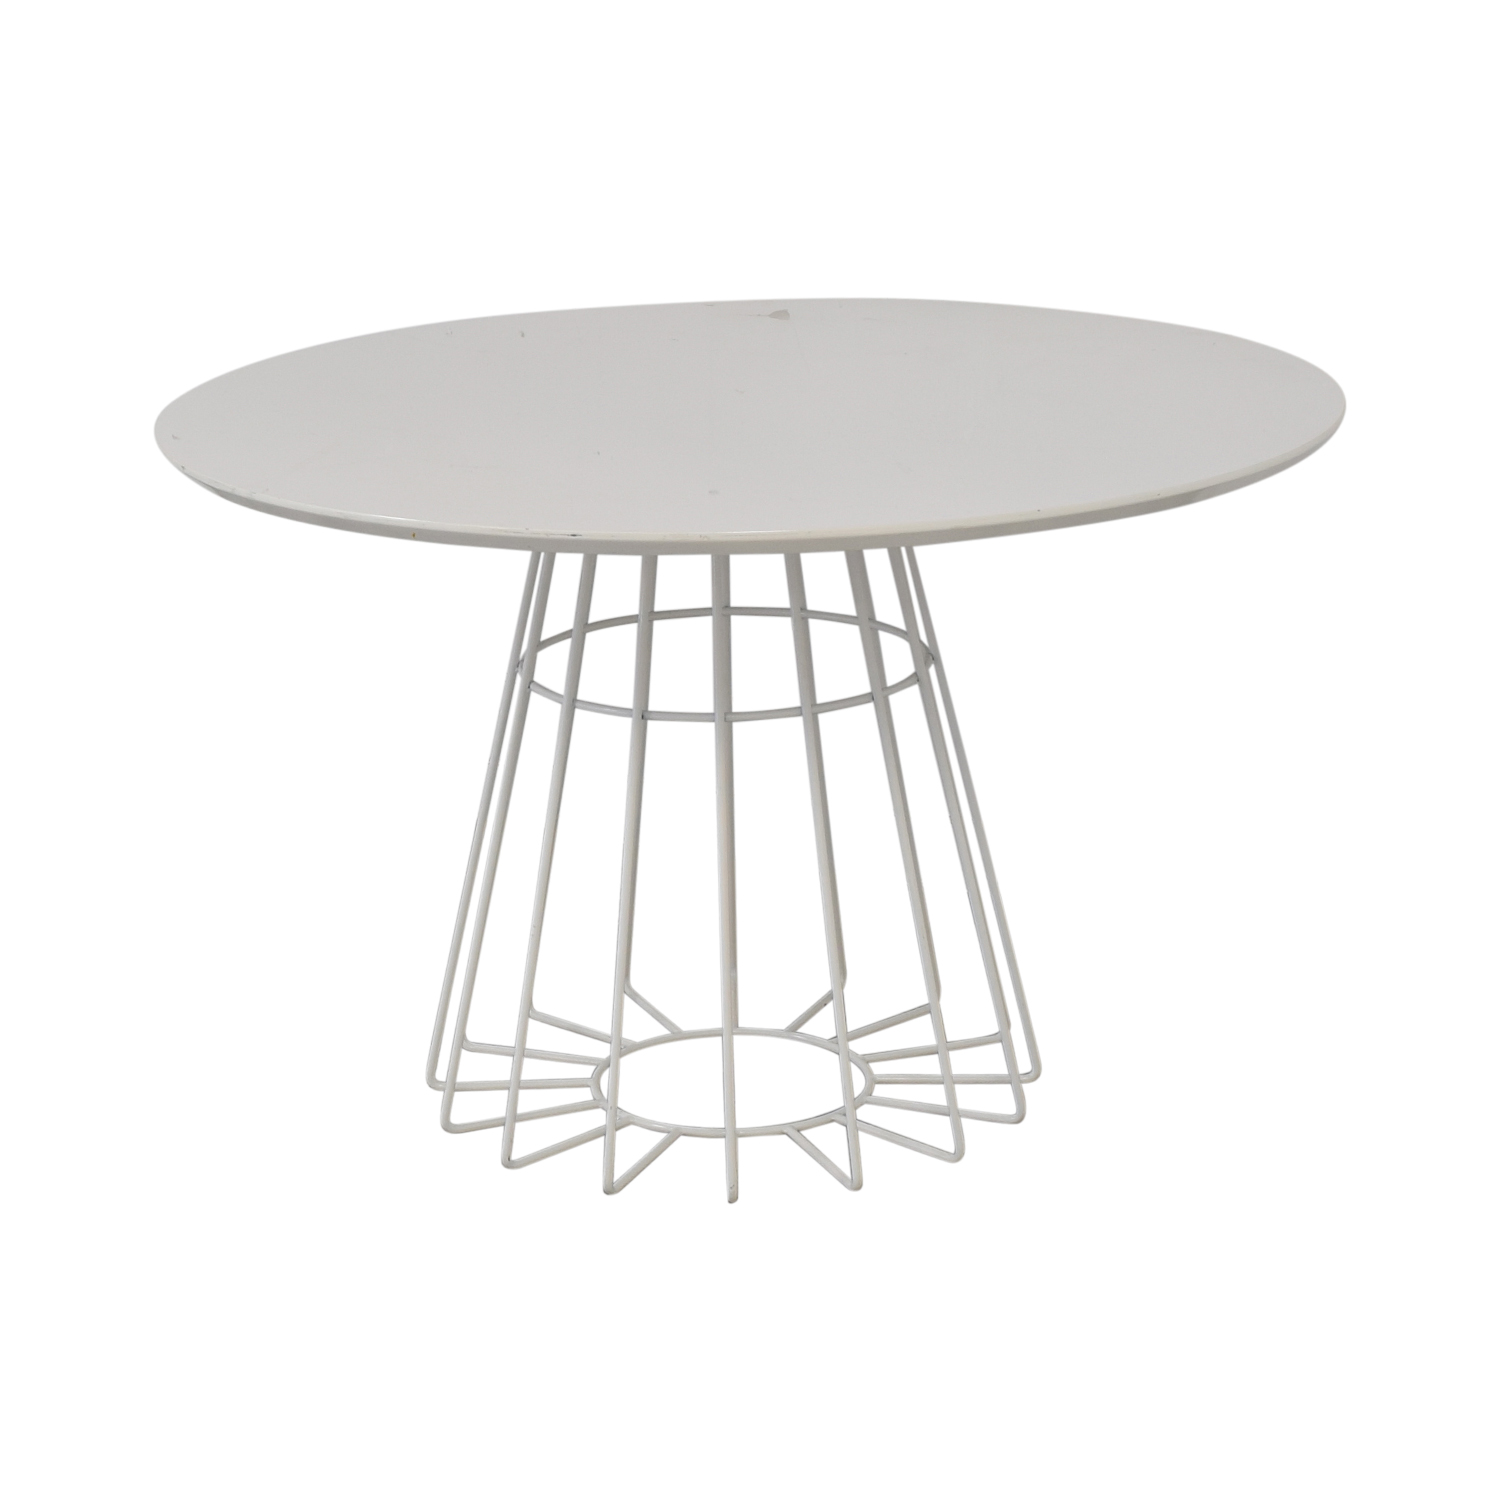 CB2 CB2 Compass Wire Base Dining Table dimensions